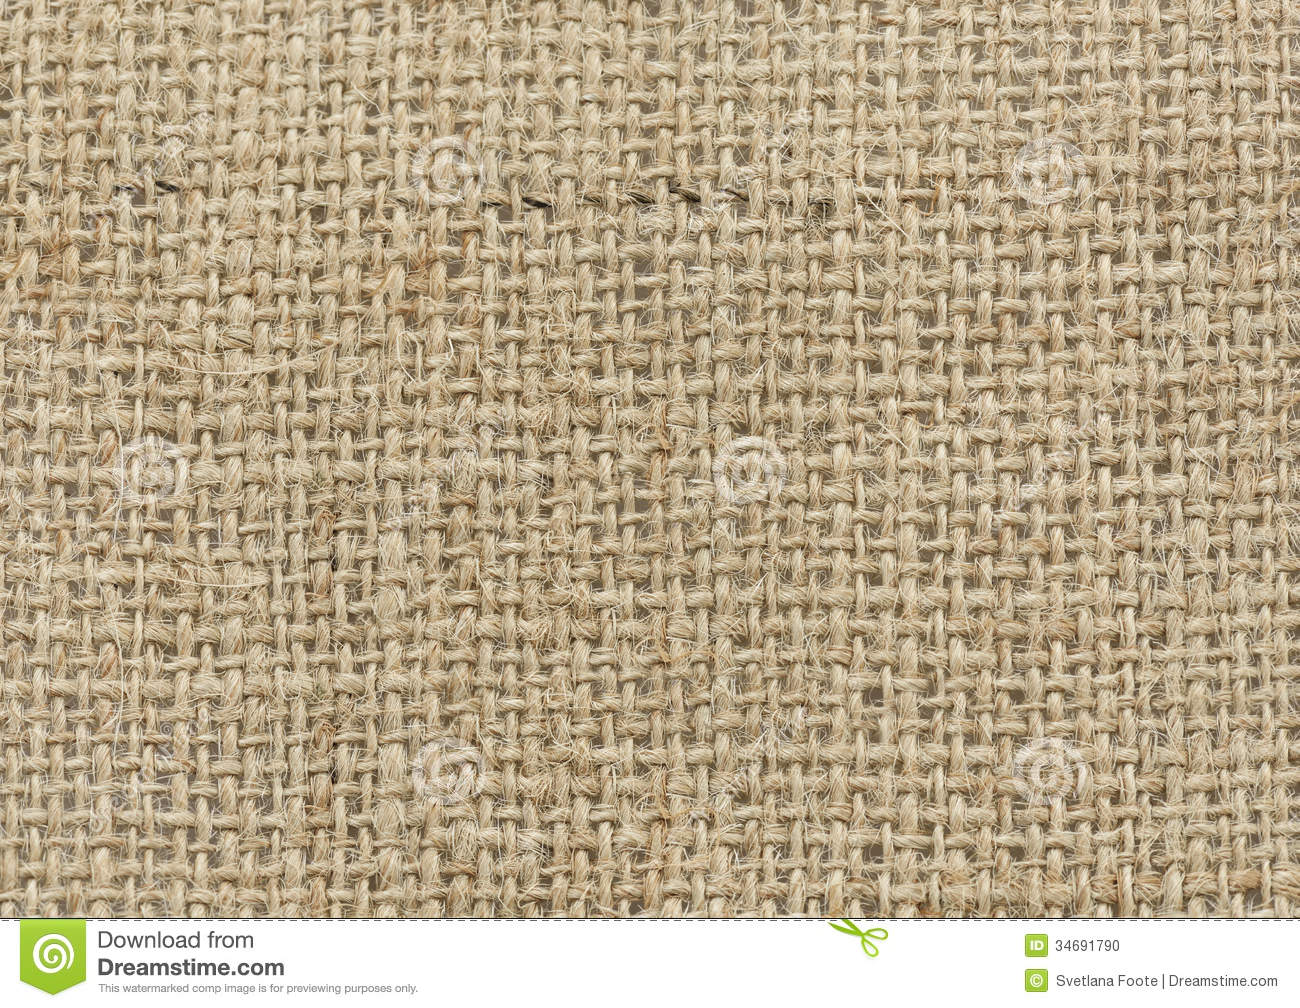 Linen Background Texture Free Stock Photos Download 9 467: Natural Linen Texture Stock Photo. Image Of Natural, Linen